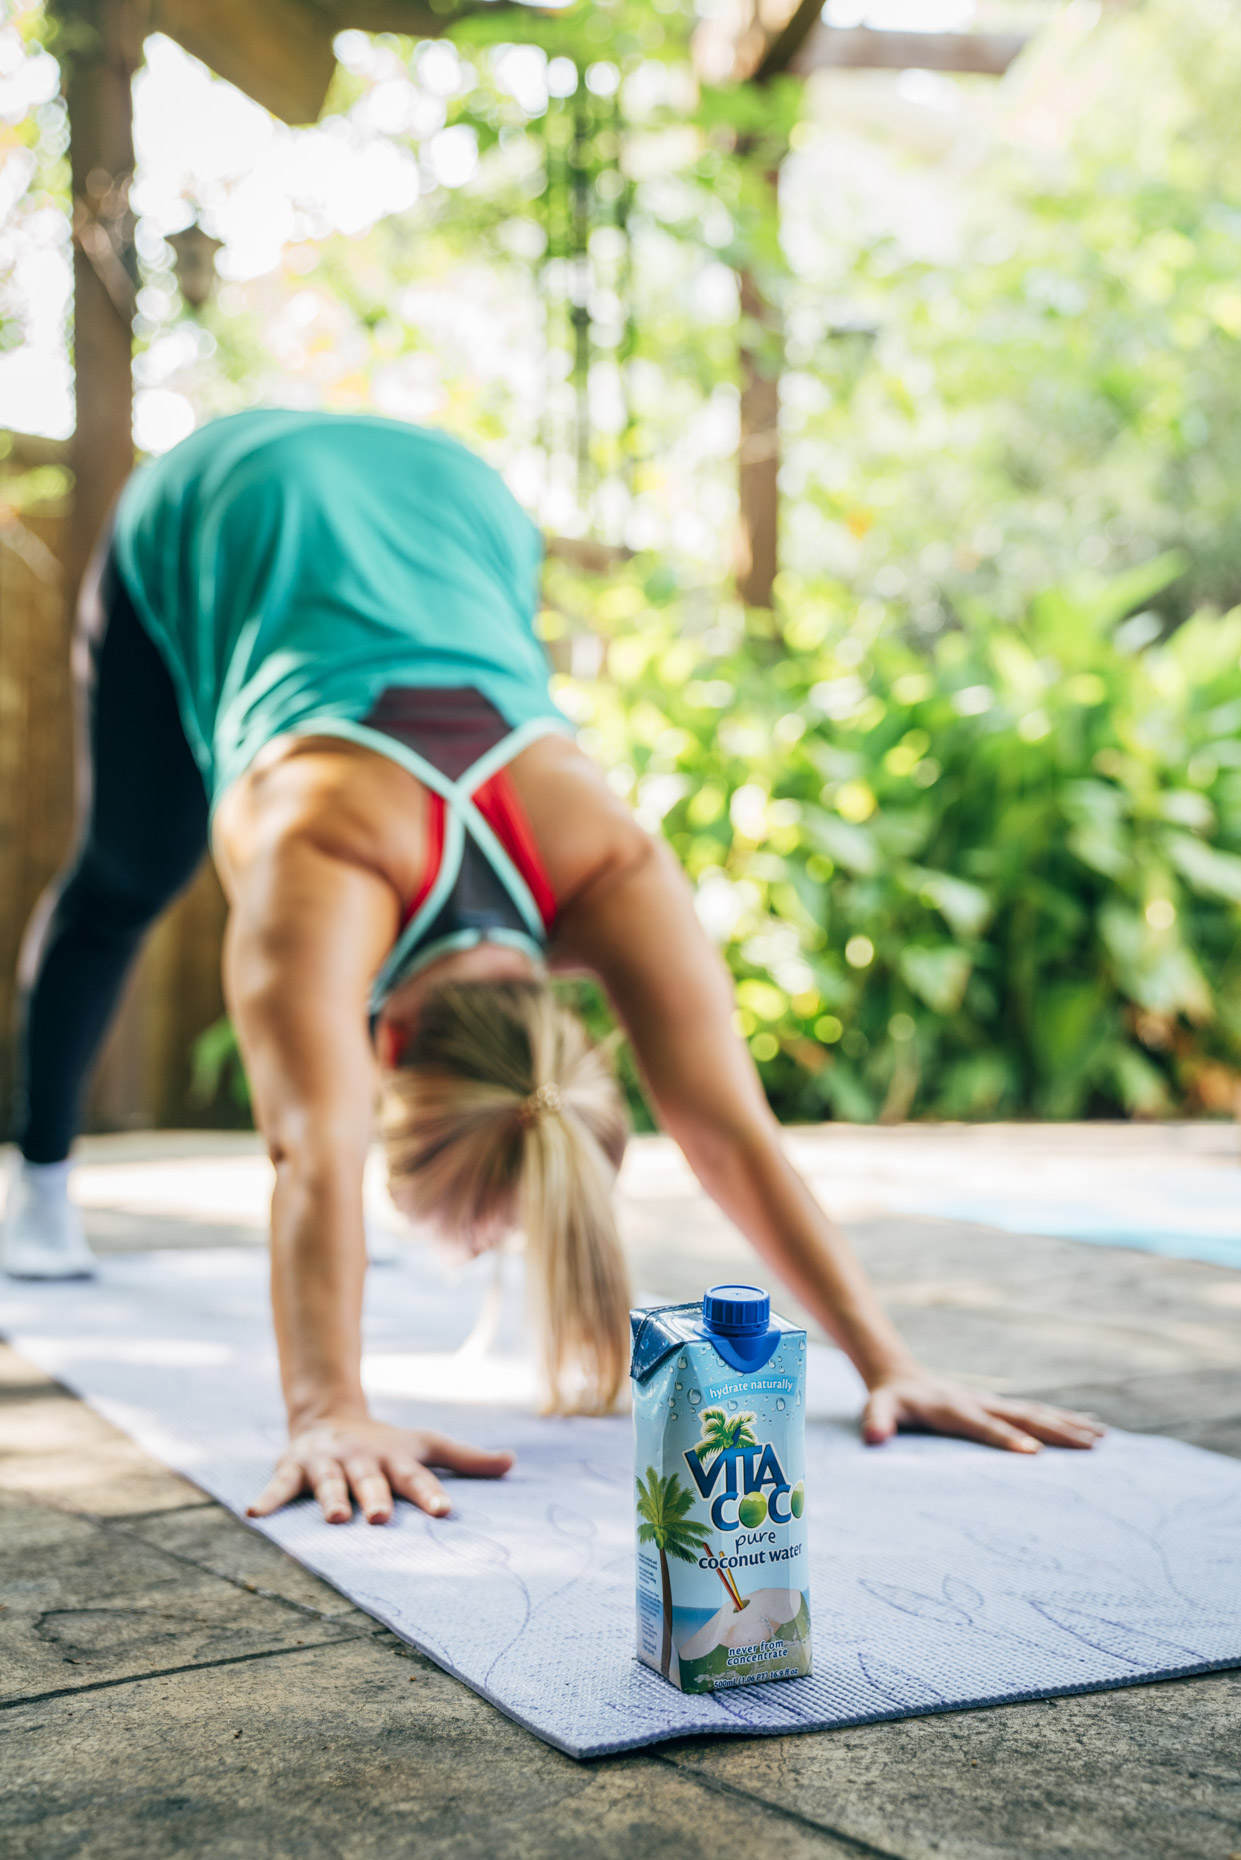 Women doing yoga on mat outside with vita coco coconut water